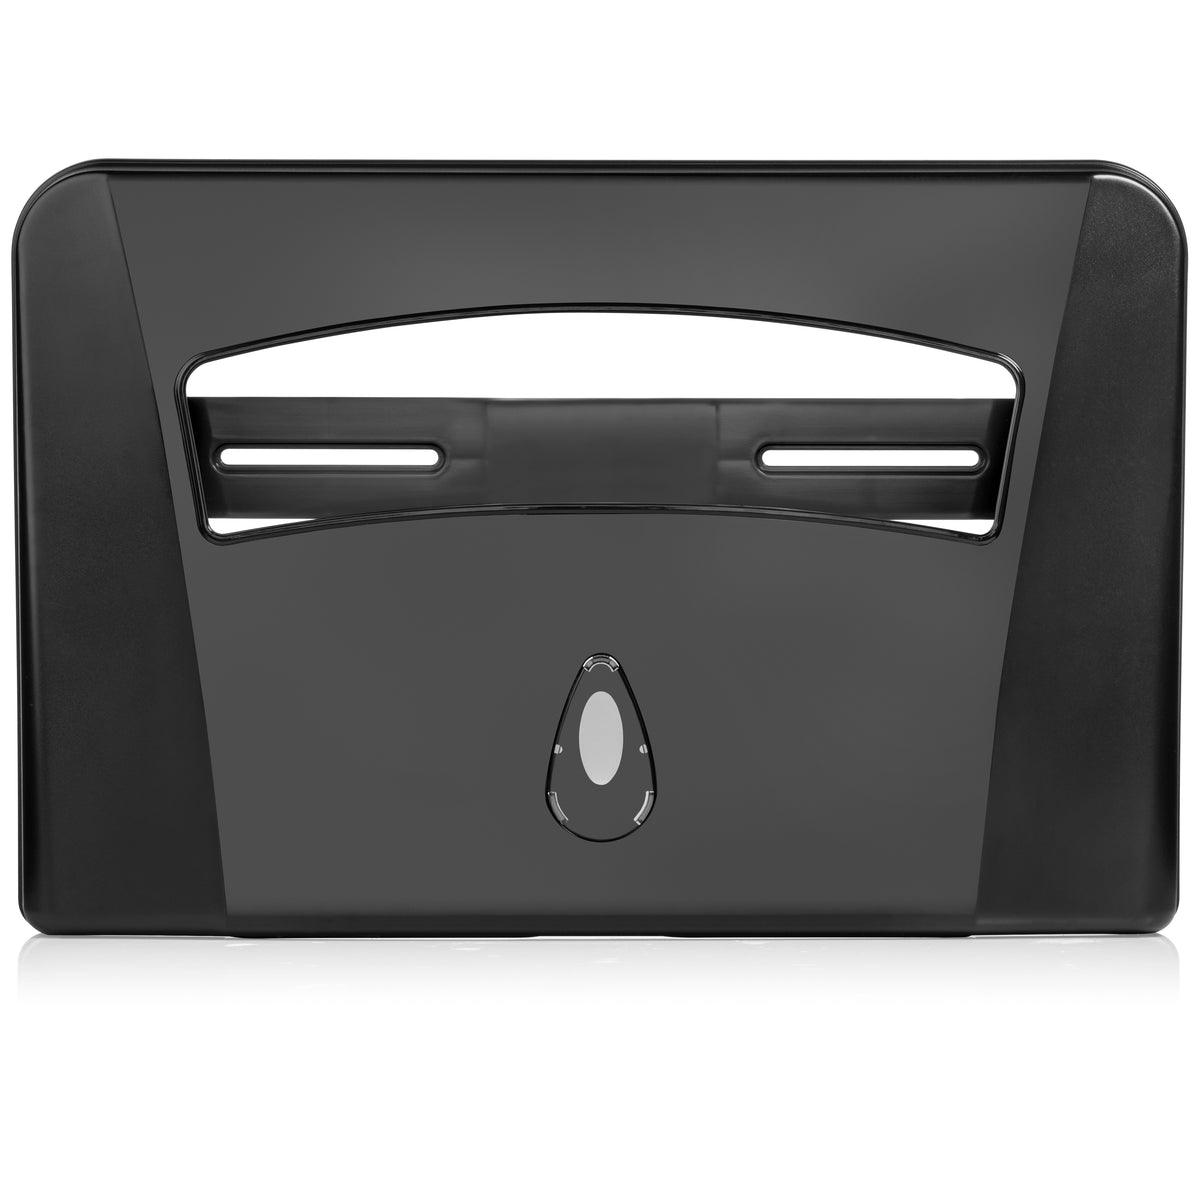 Toilet Seat Cover Dispenser (Black) - TS12B